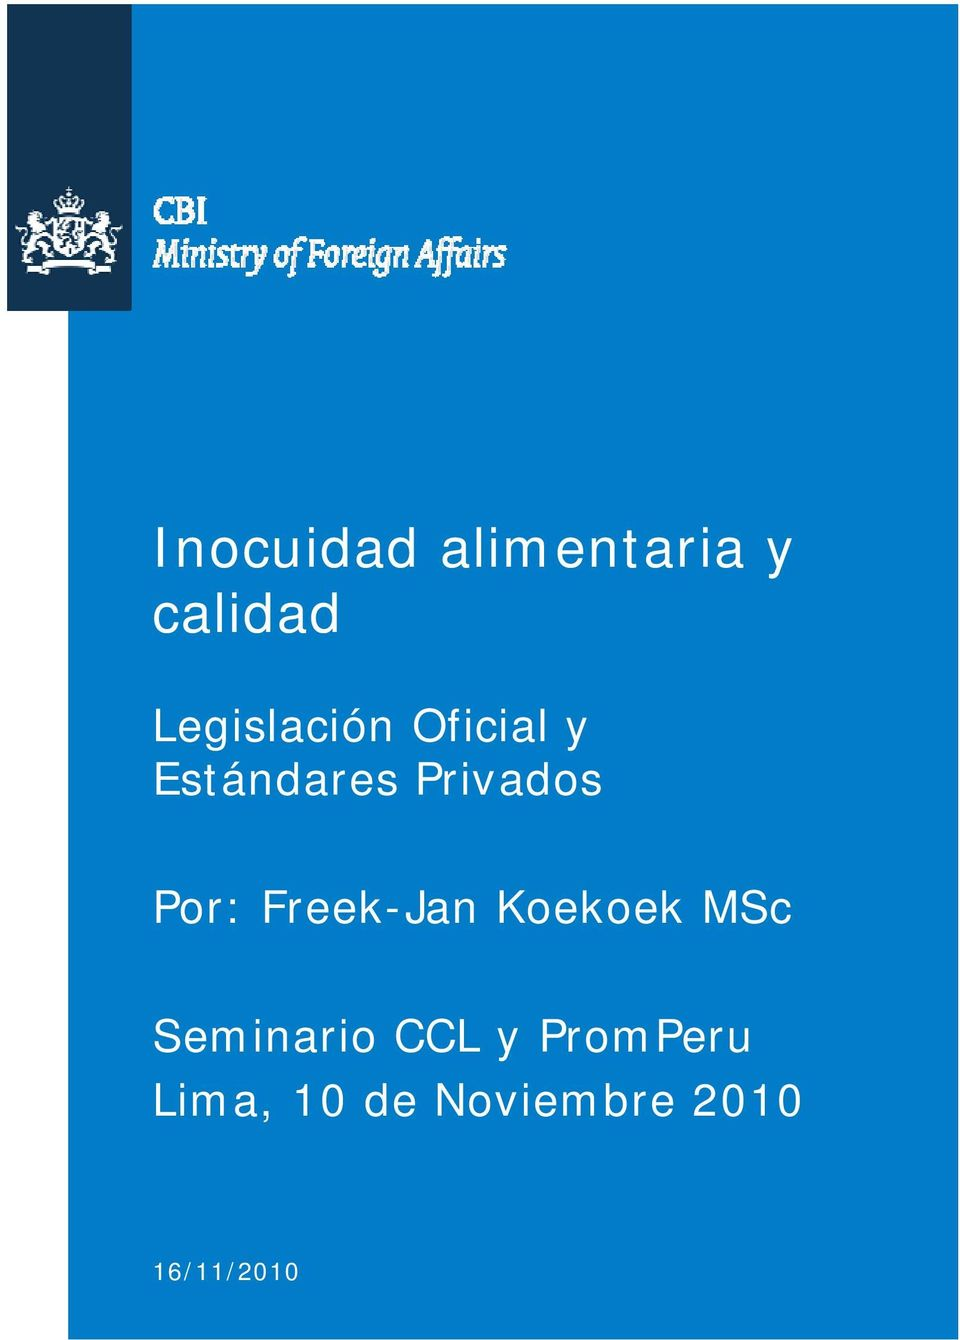 Privados Por: Freek-Jan Koekoek MSc